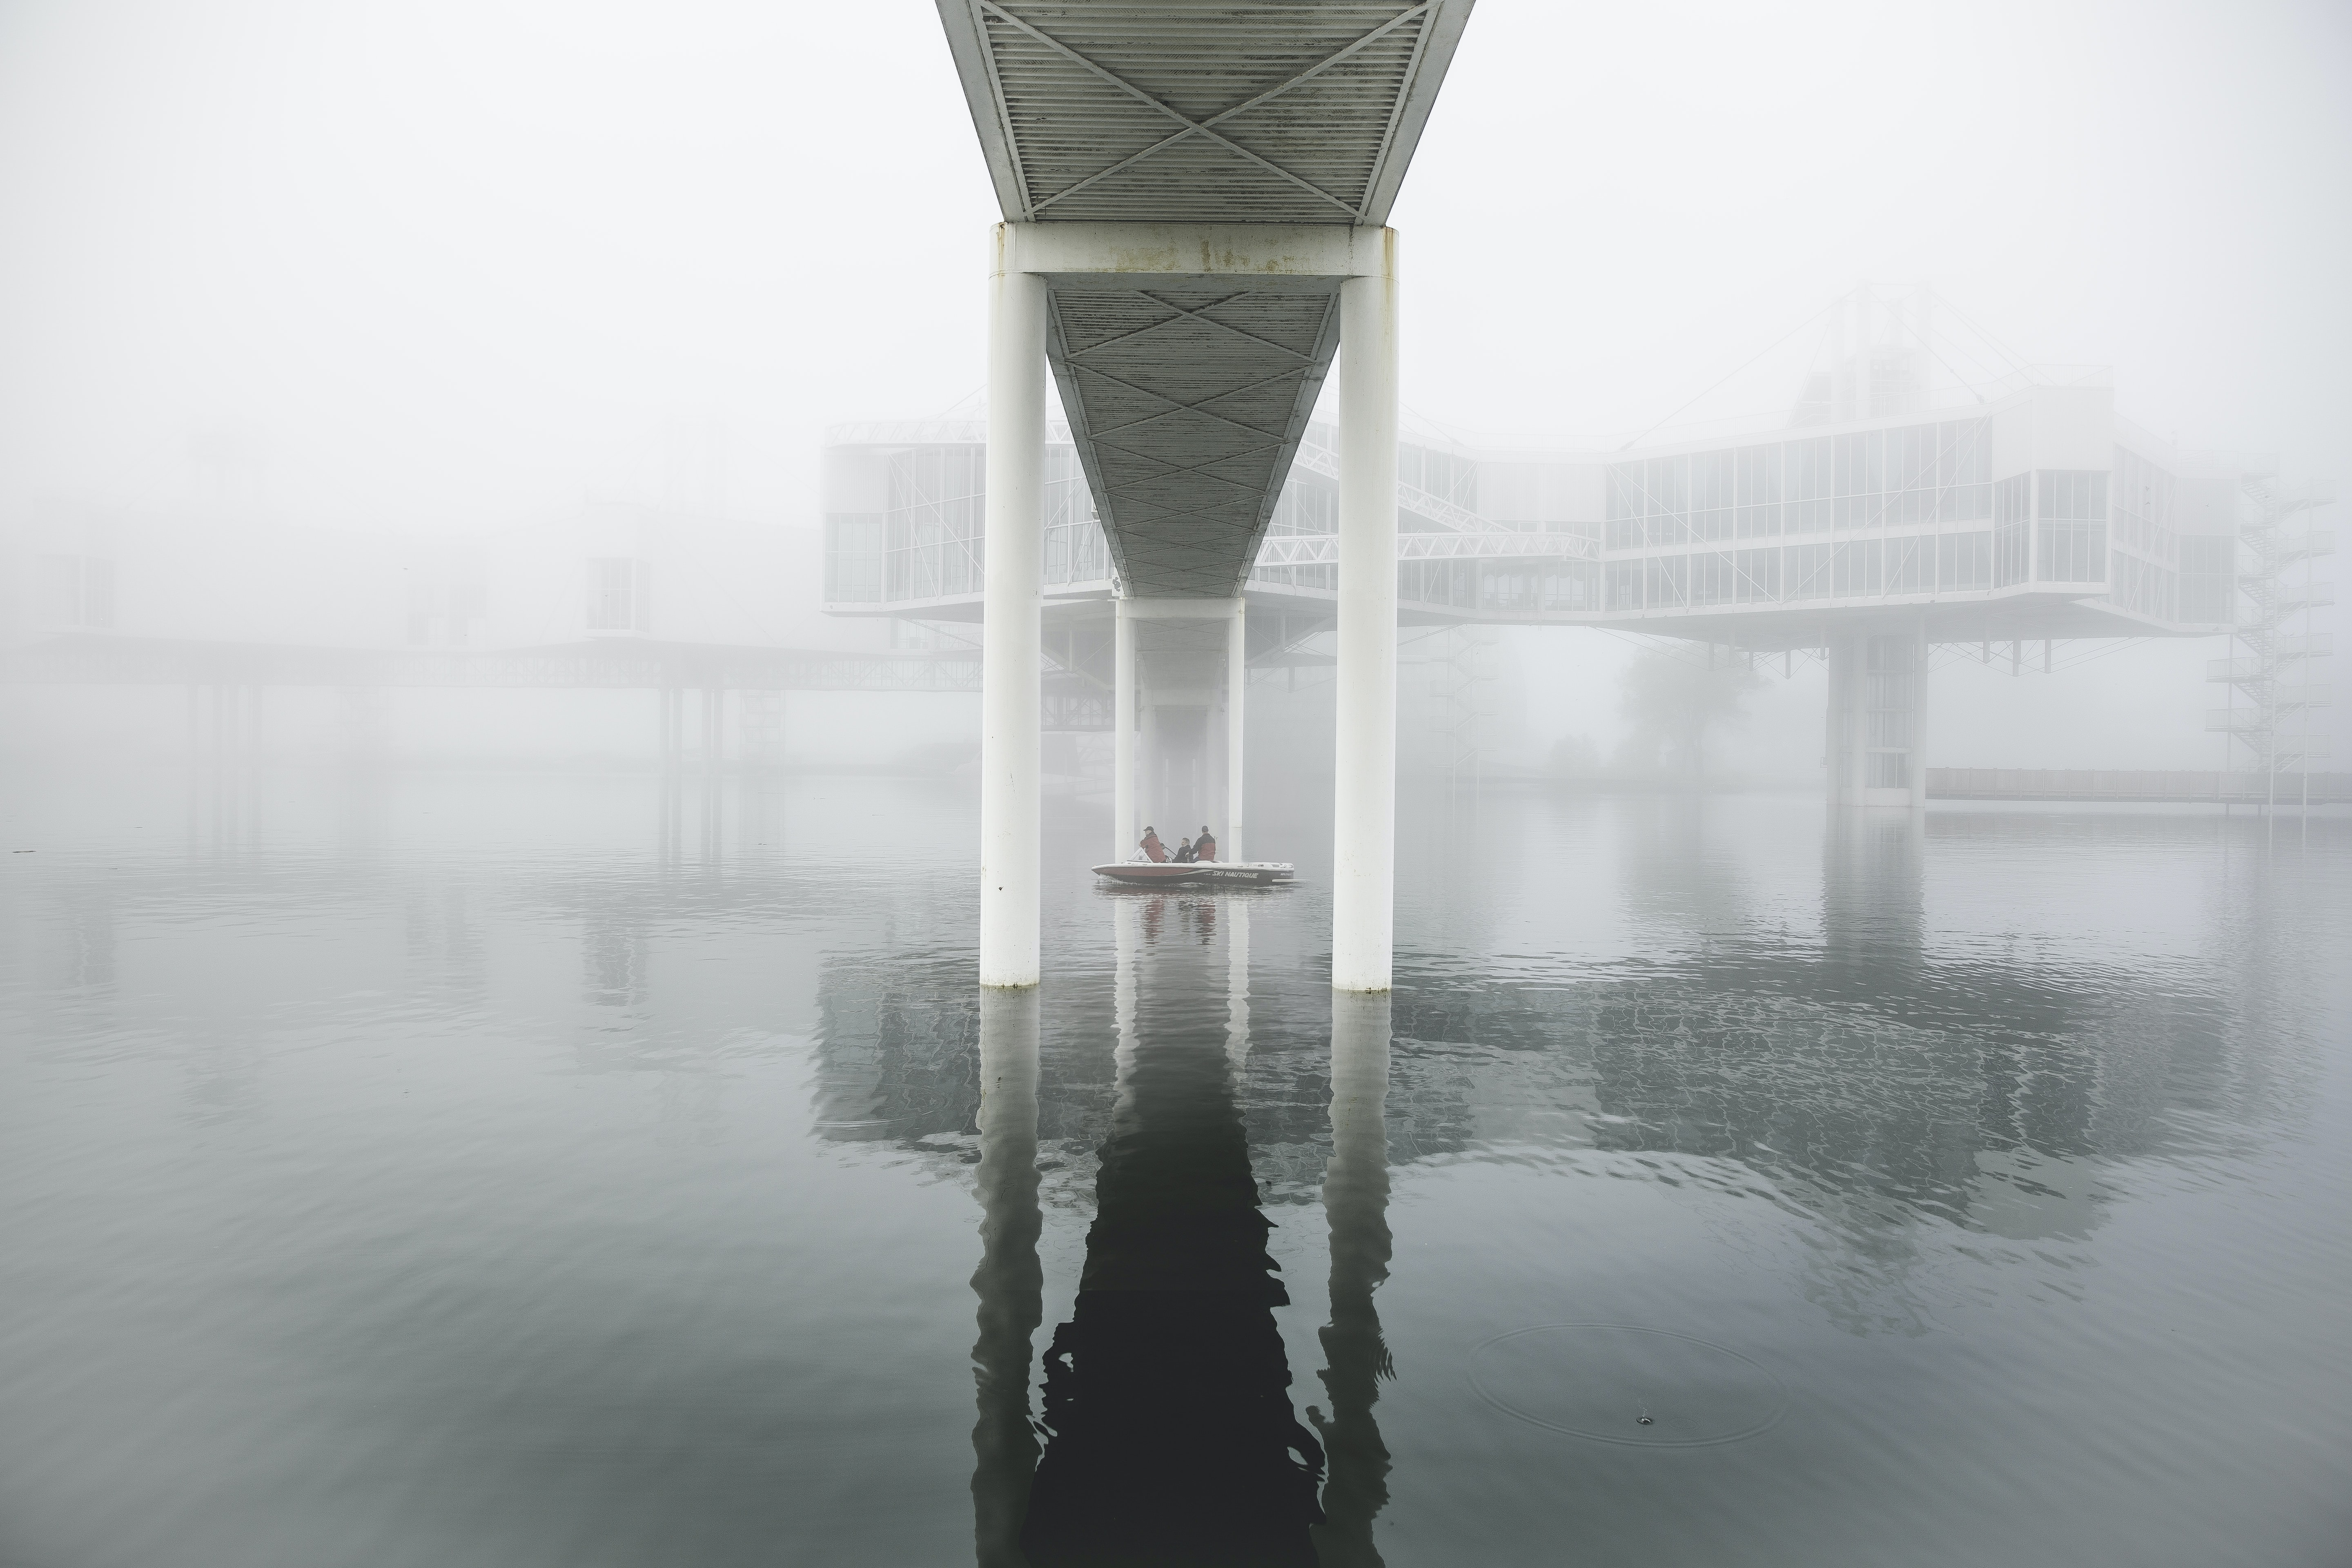 Boat passes under a bridge on a foggy morning at sea